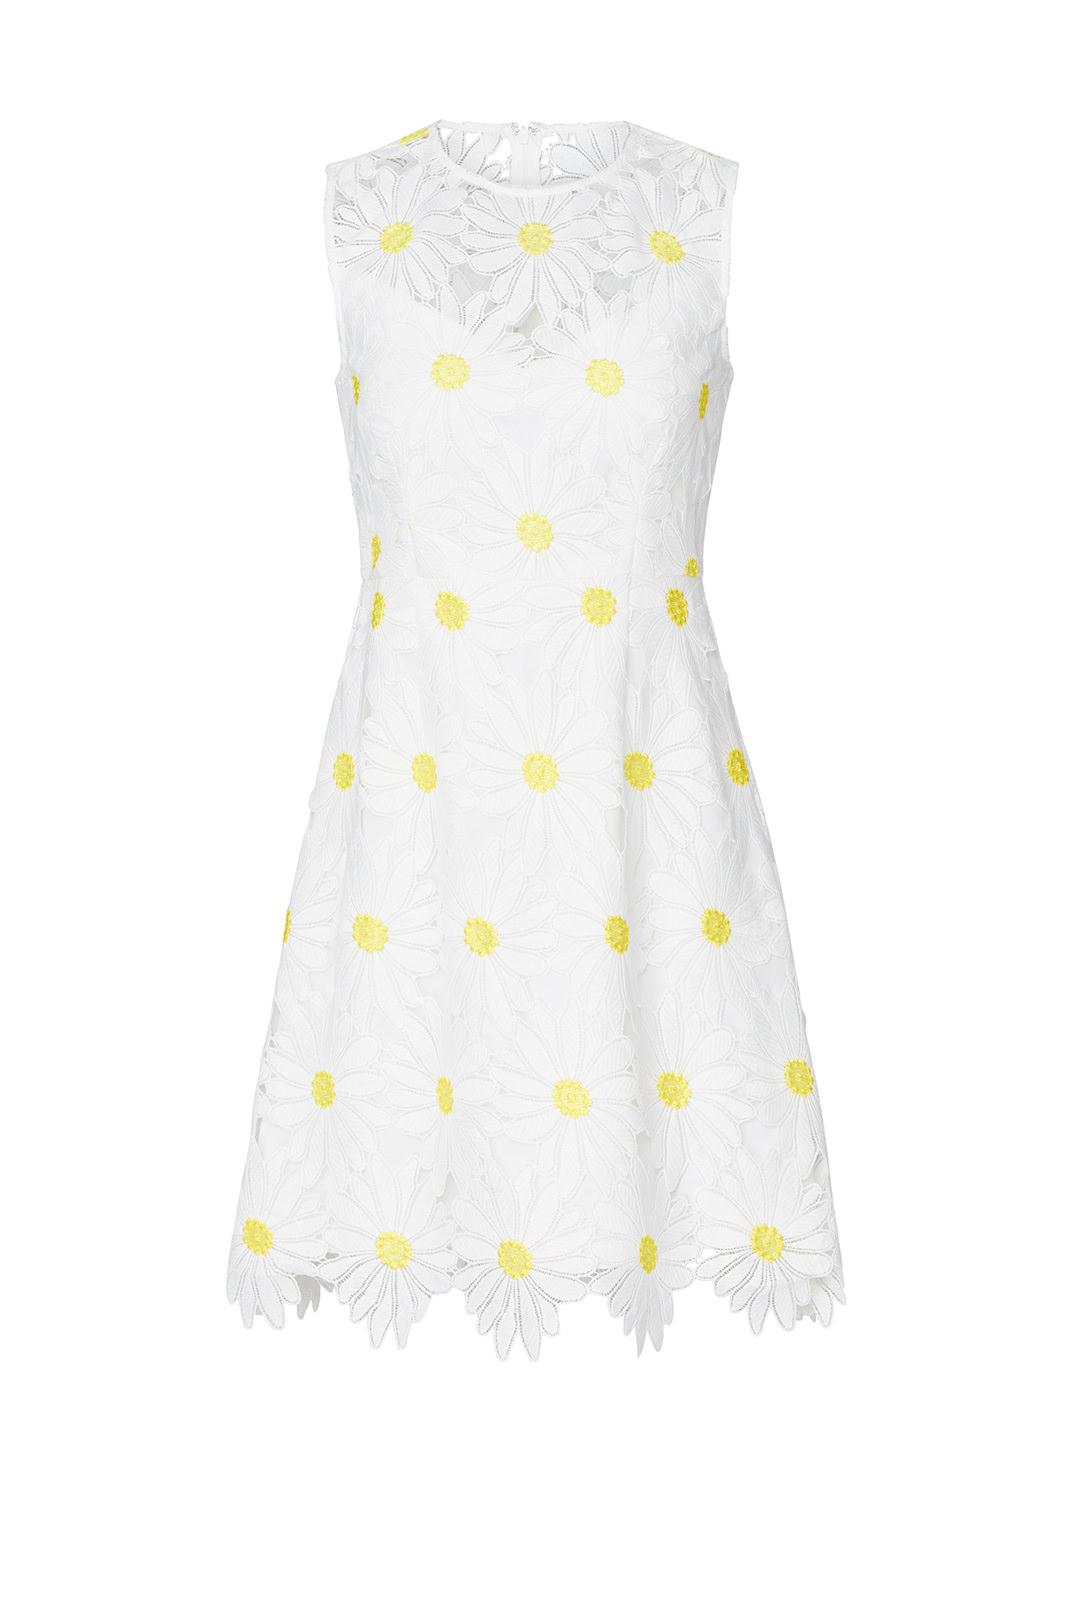 Hutch Daisy Callie Sheath - I just love me some daisies. And I feel like this could be a great work dress